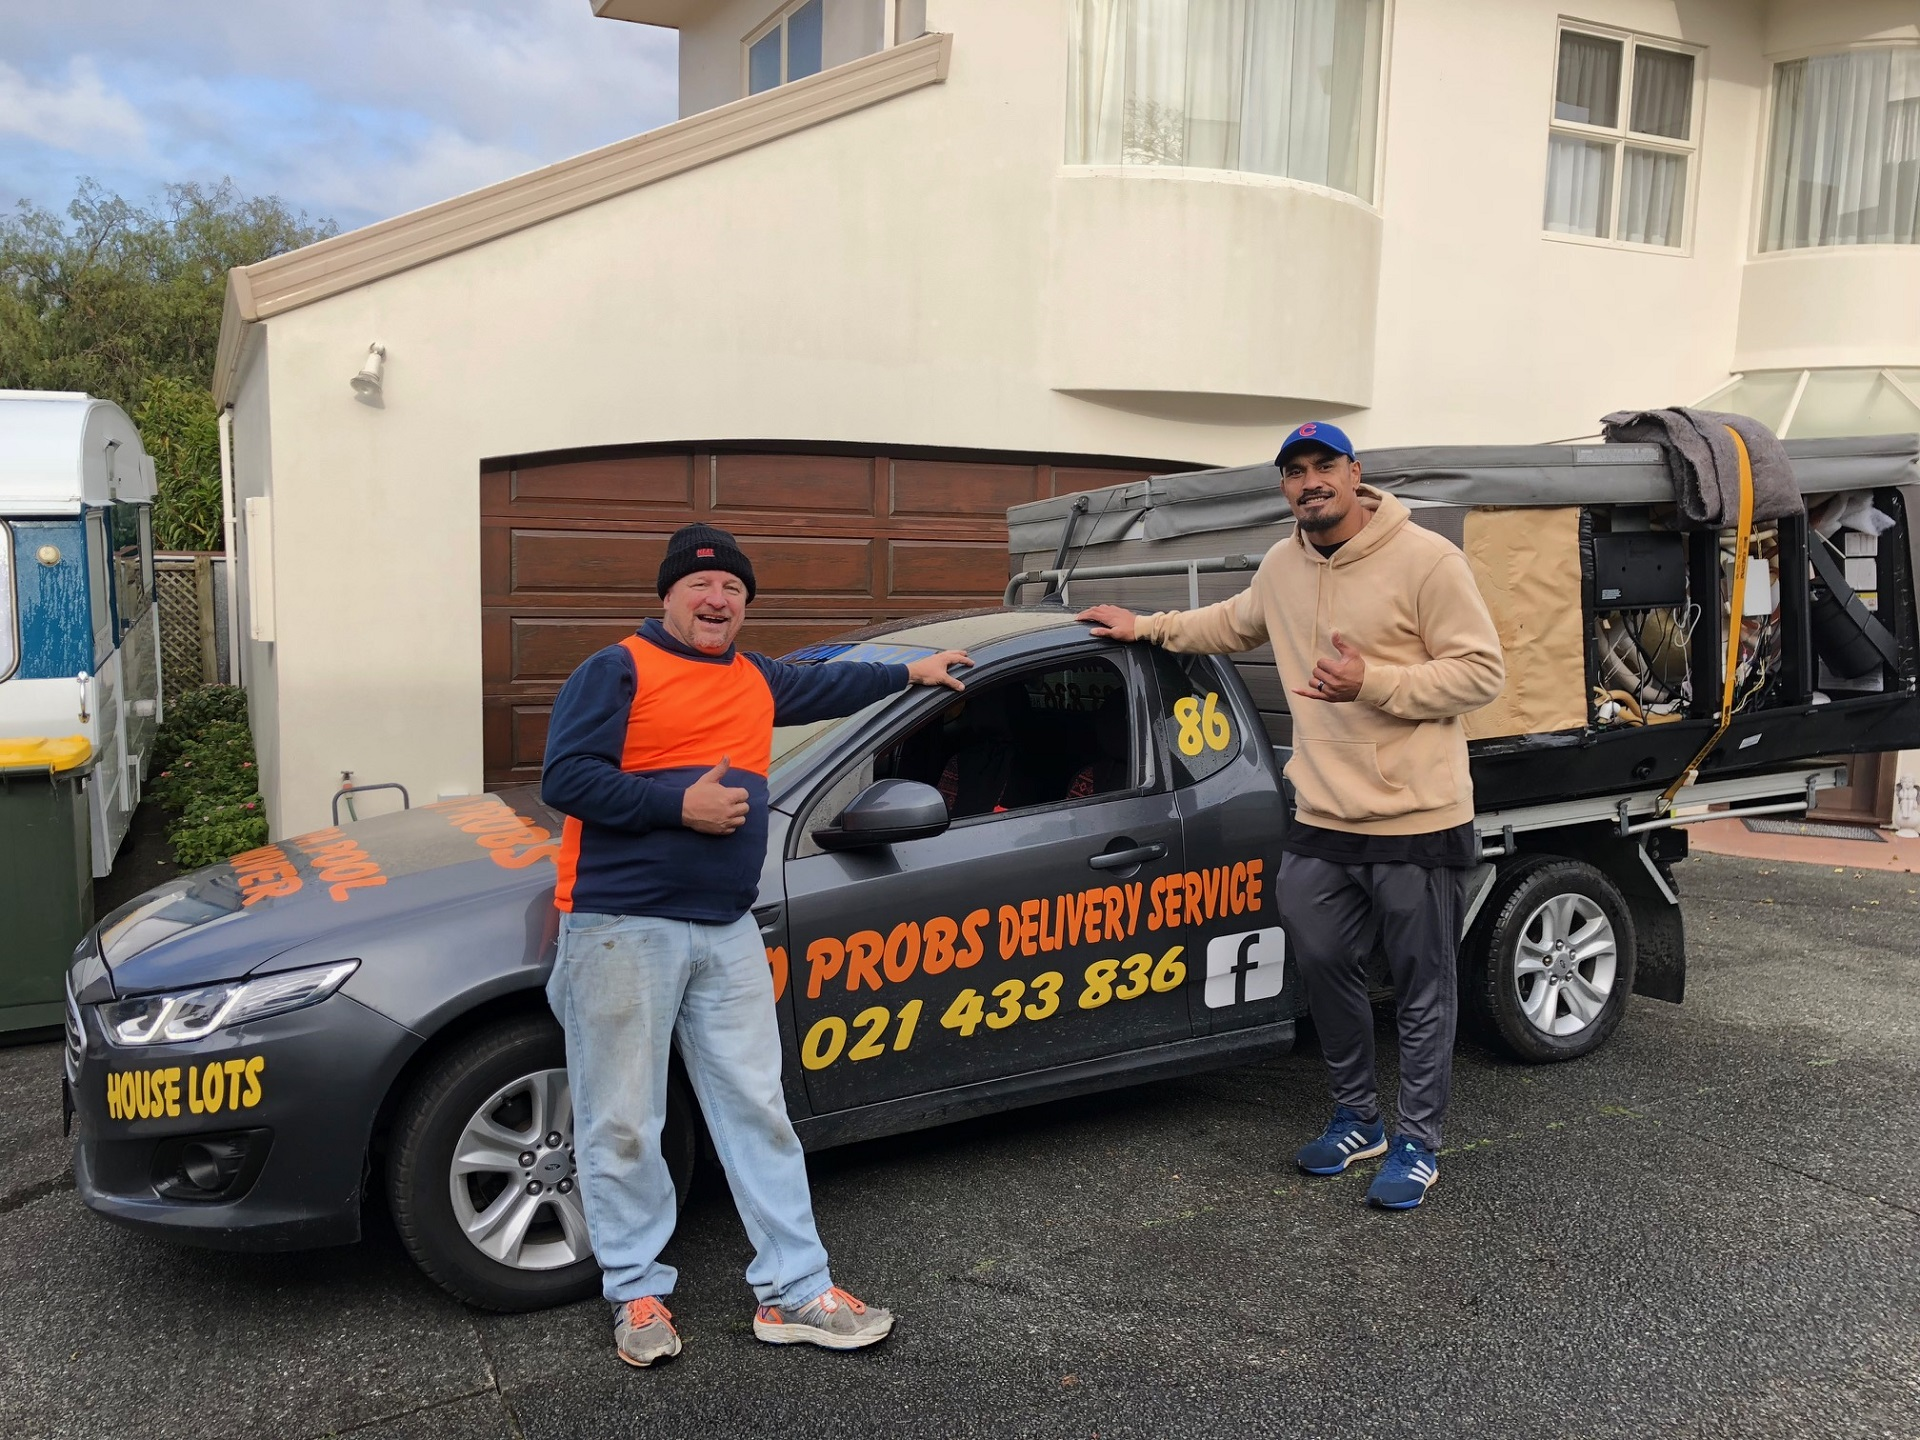 spa pool movers south auckland